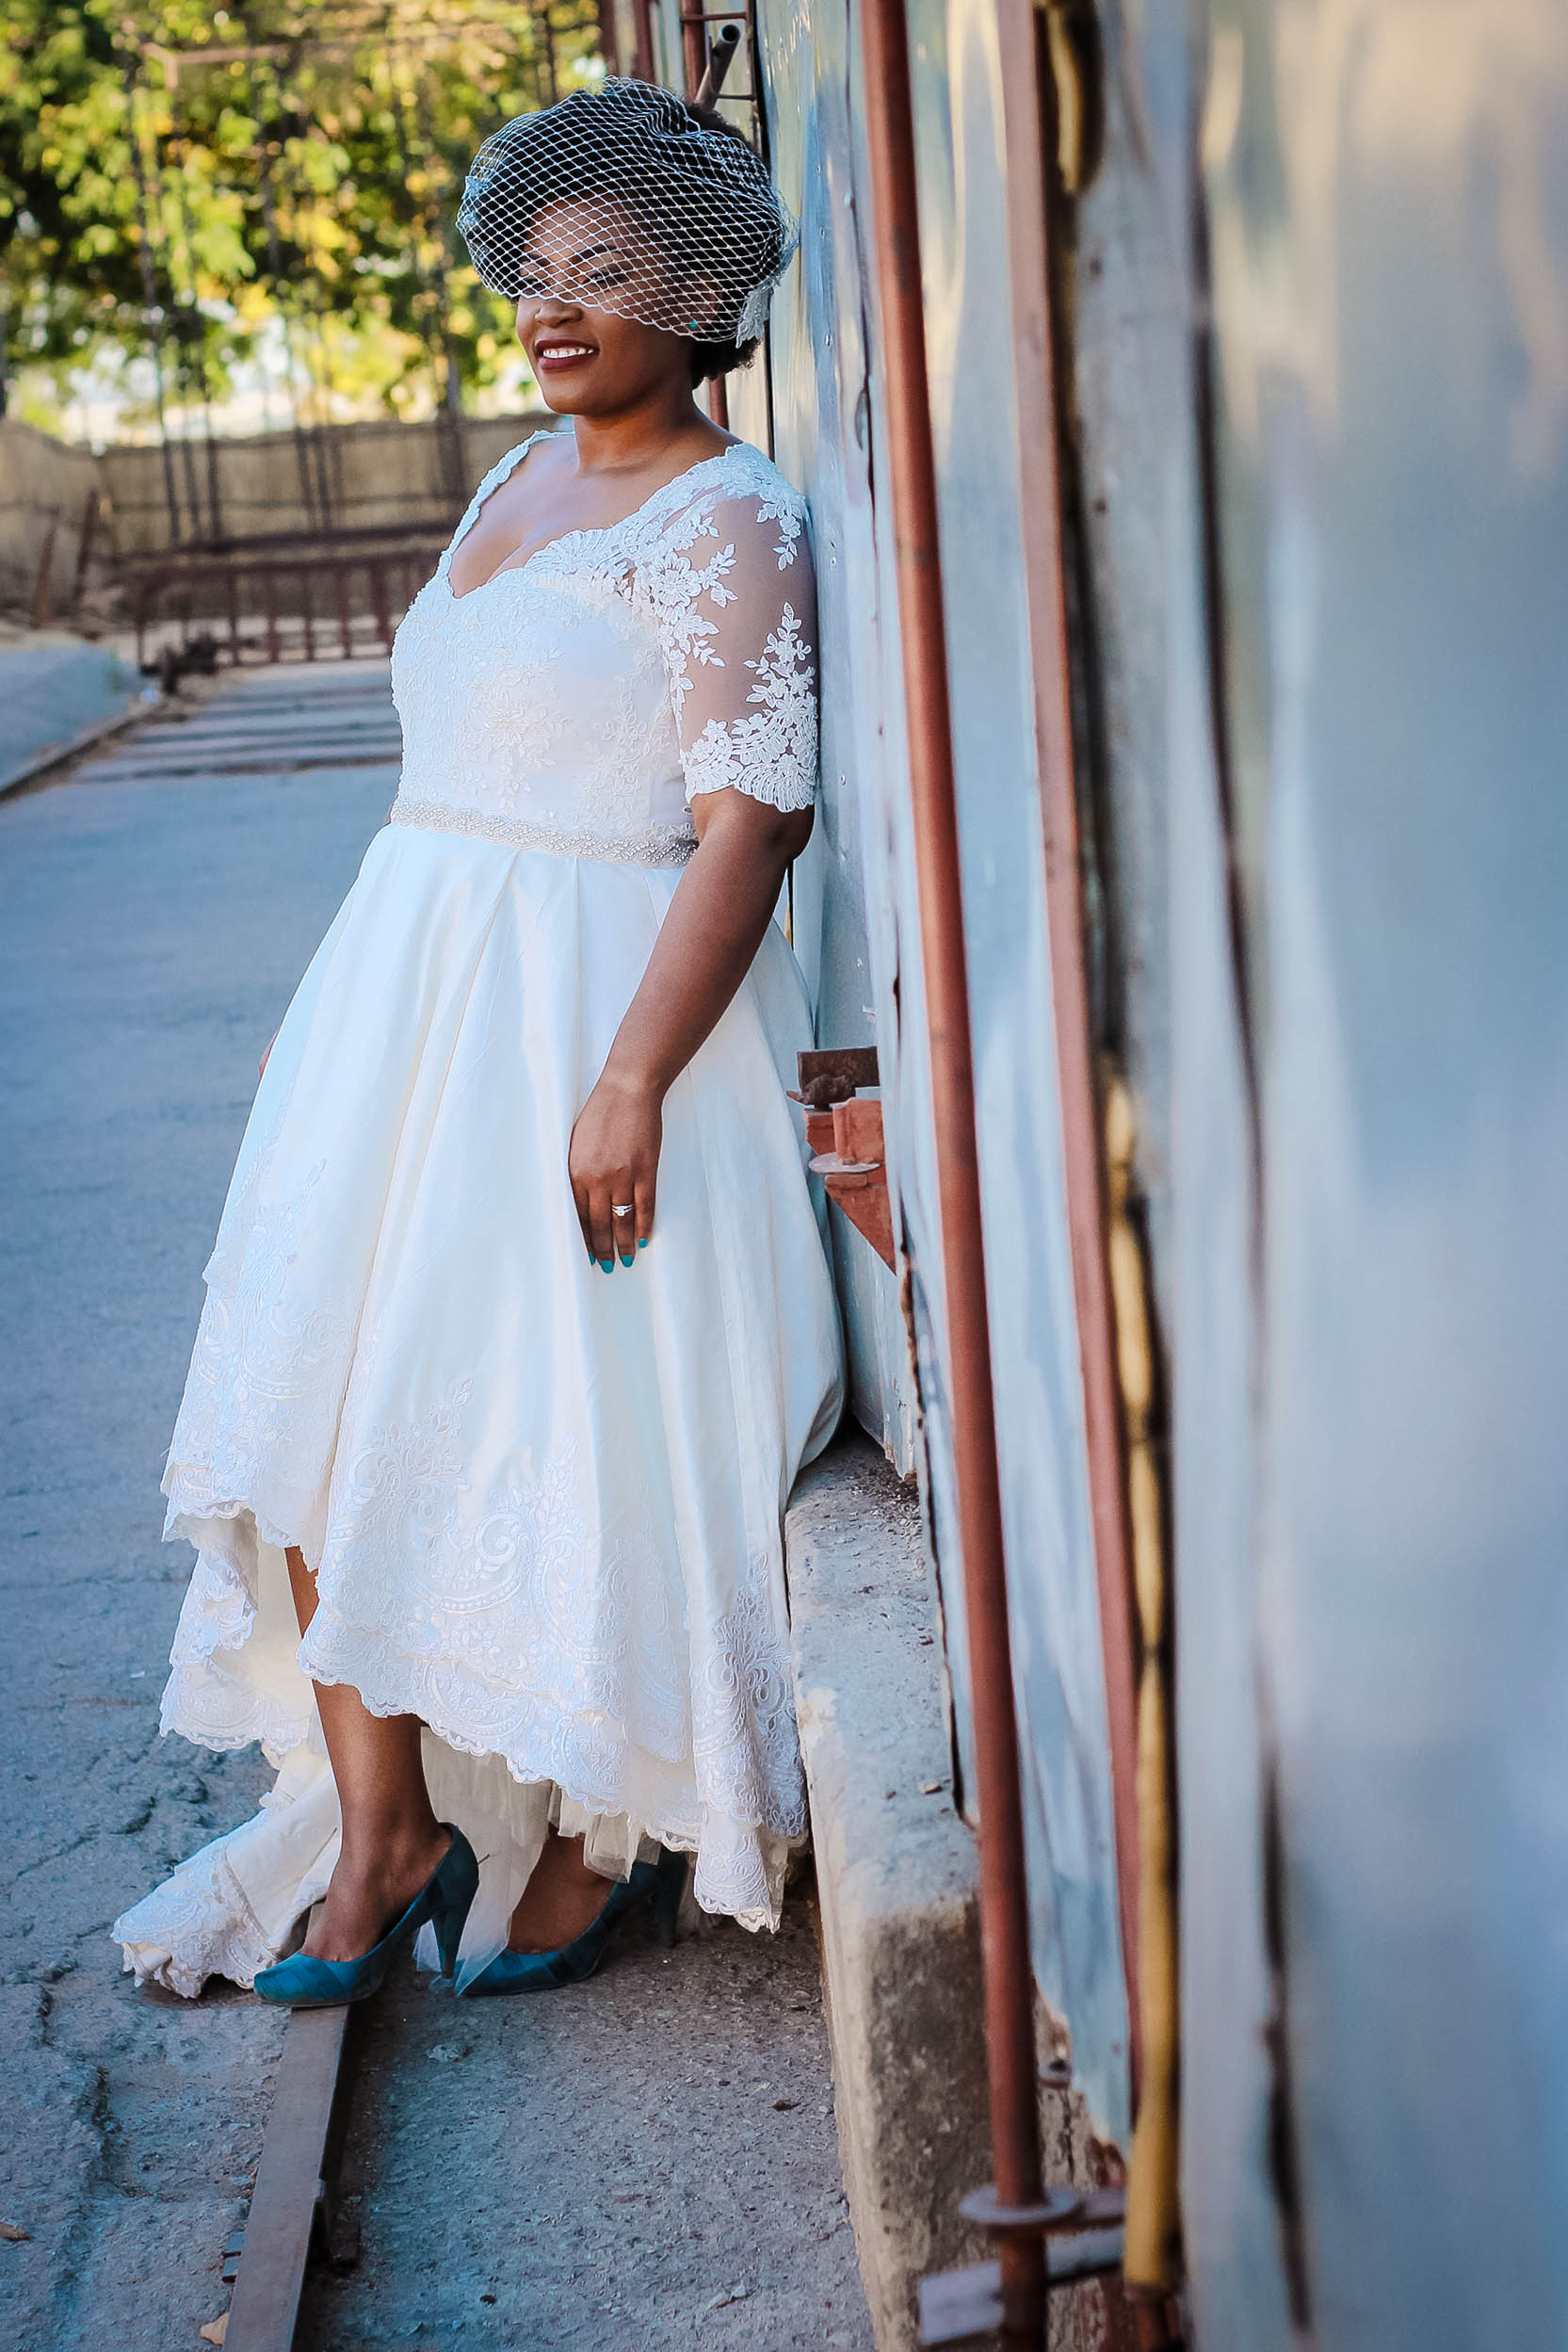 Ruvimbo Mutukwa - Alana van Heerden Wedding Gowns